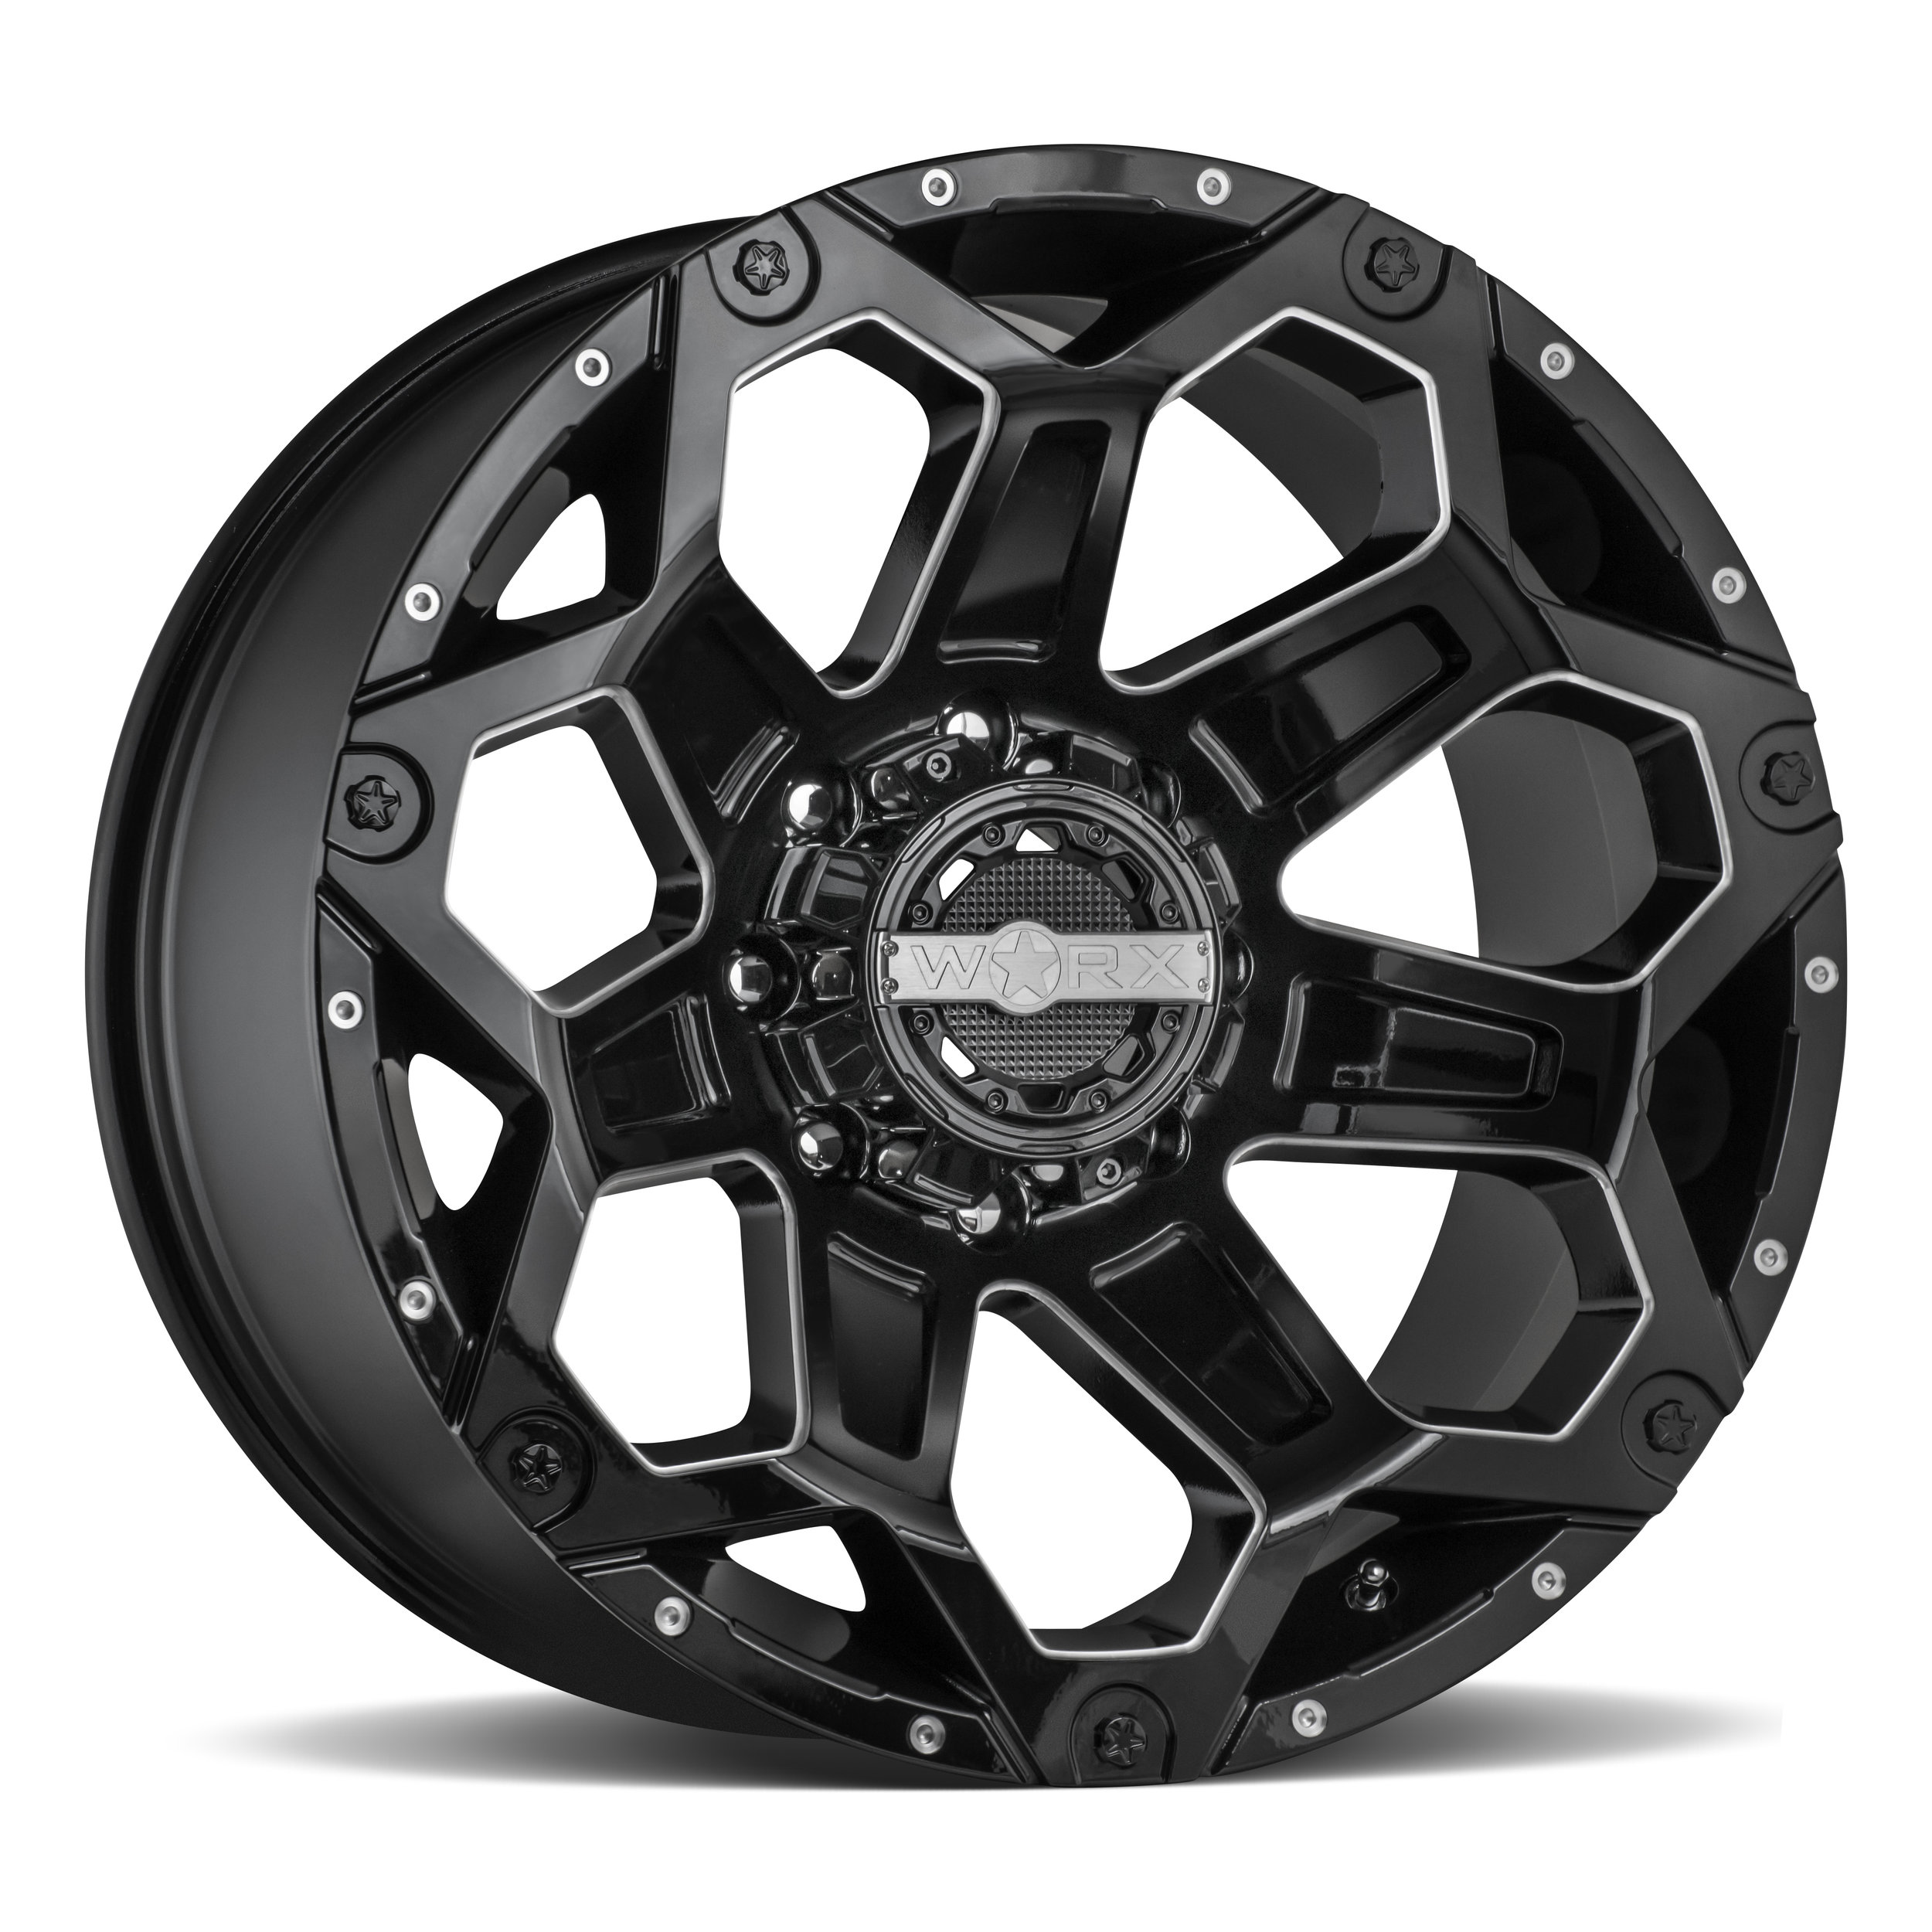 wrx_812_gloss_black_mill_8lug_std.jpg